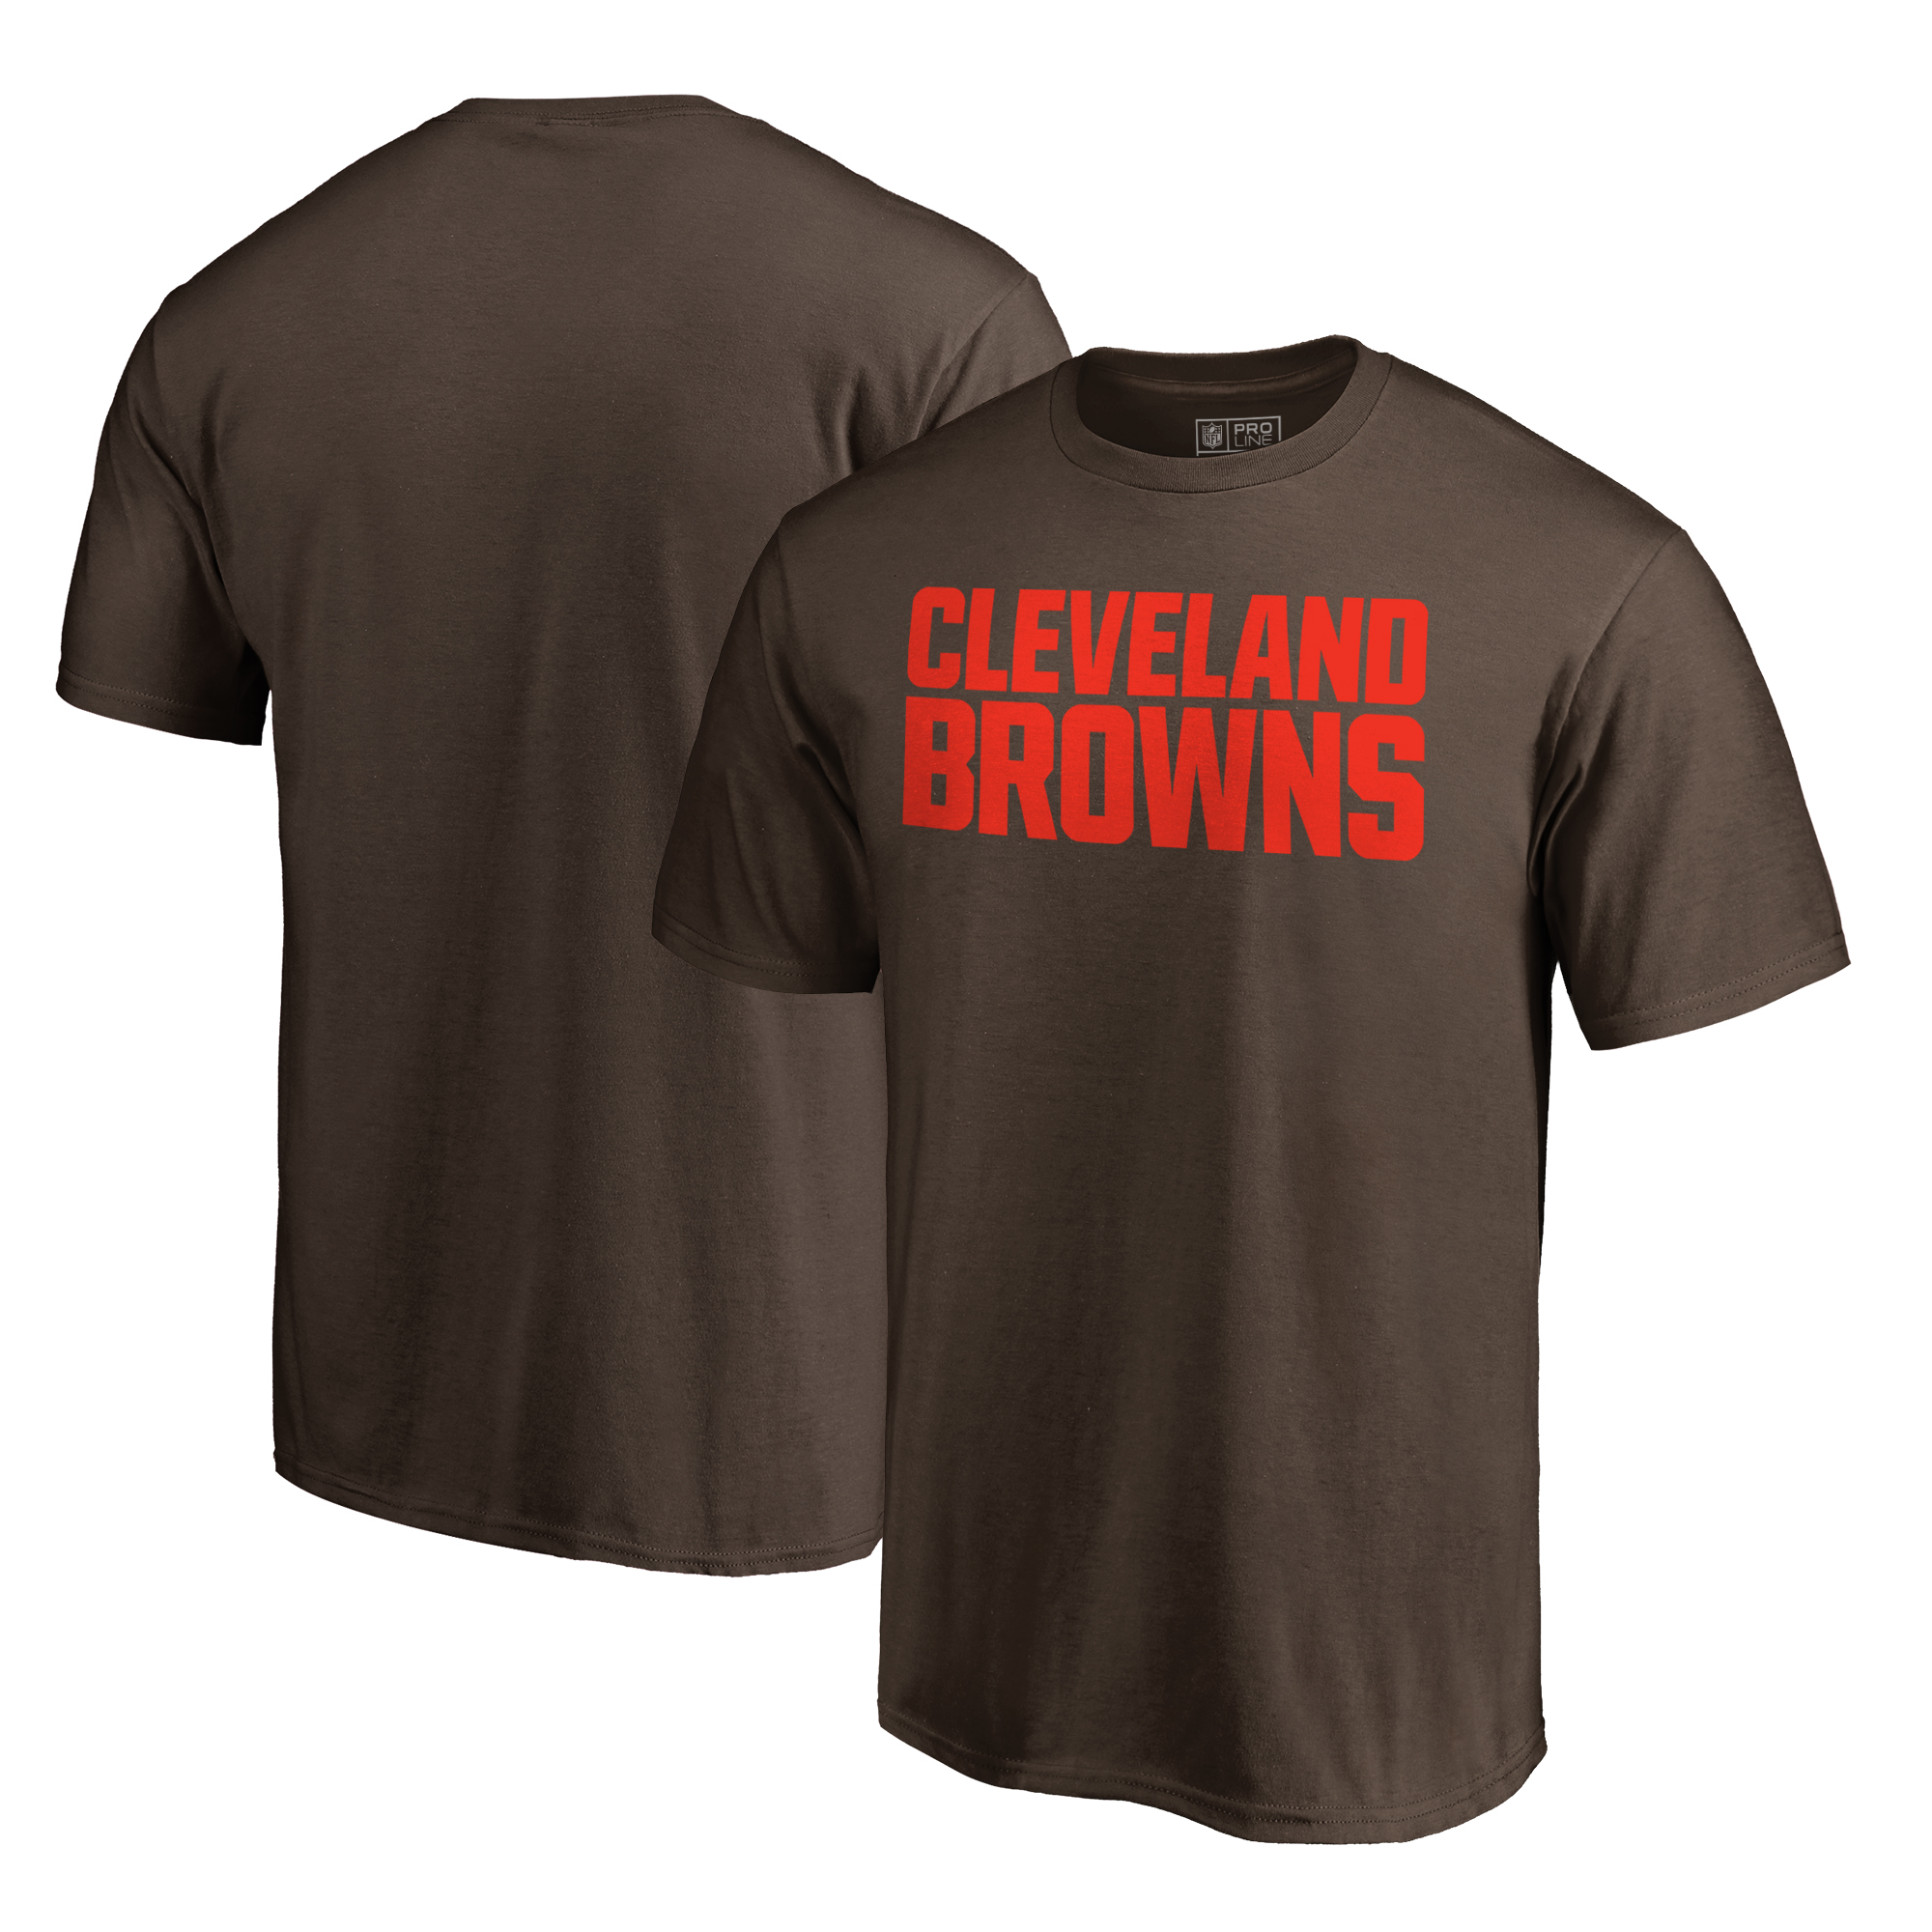 Cleveland Browns NFL Pro Line by Fanatics Branded Wordmark T-Shirt - Brown